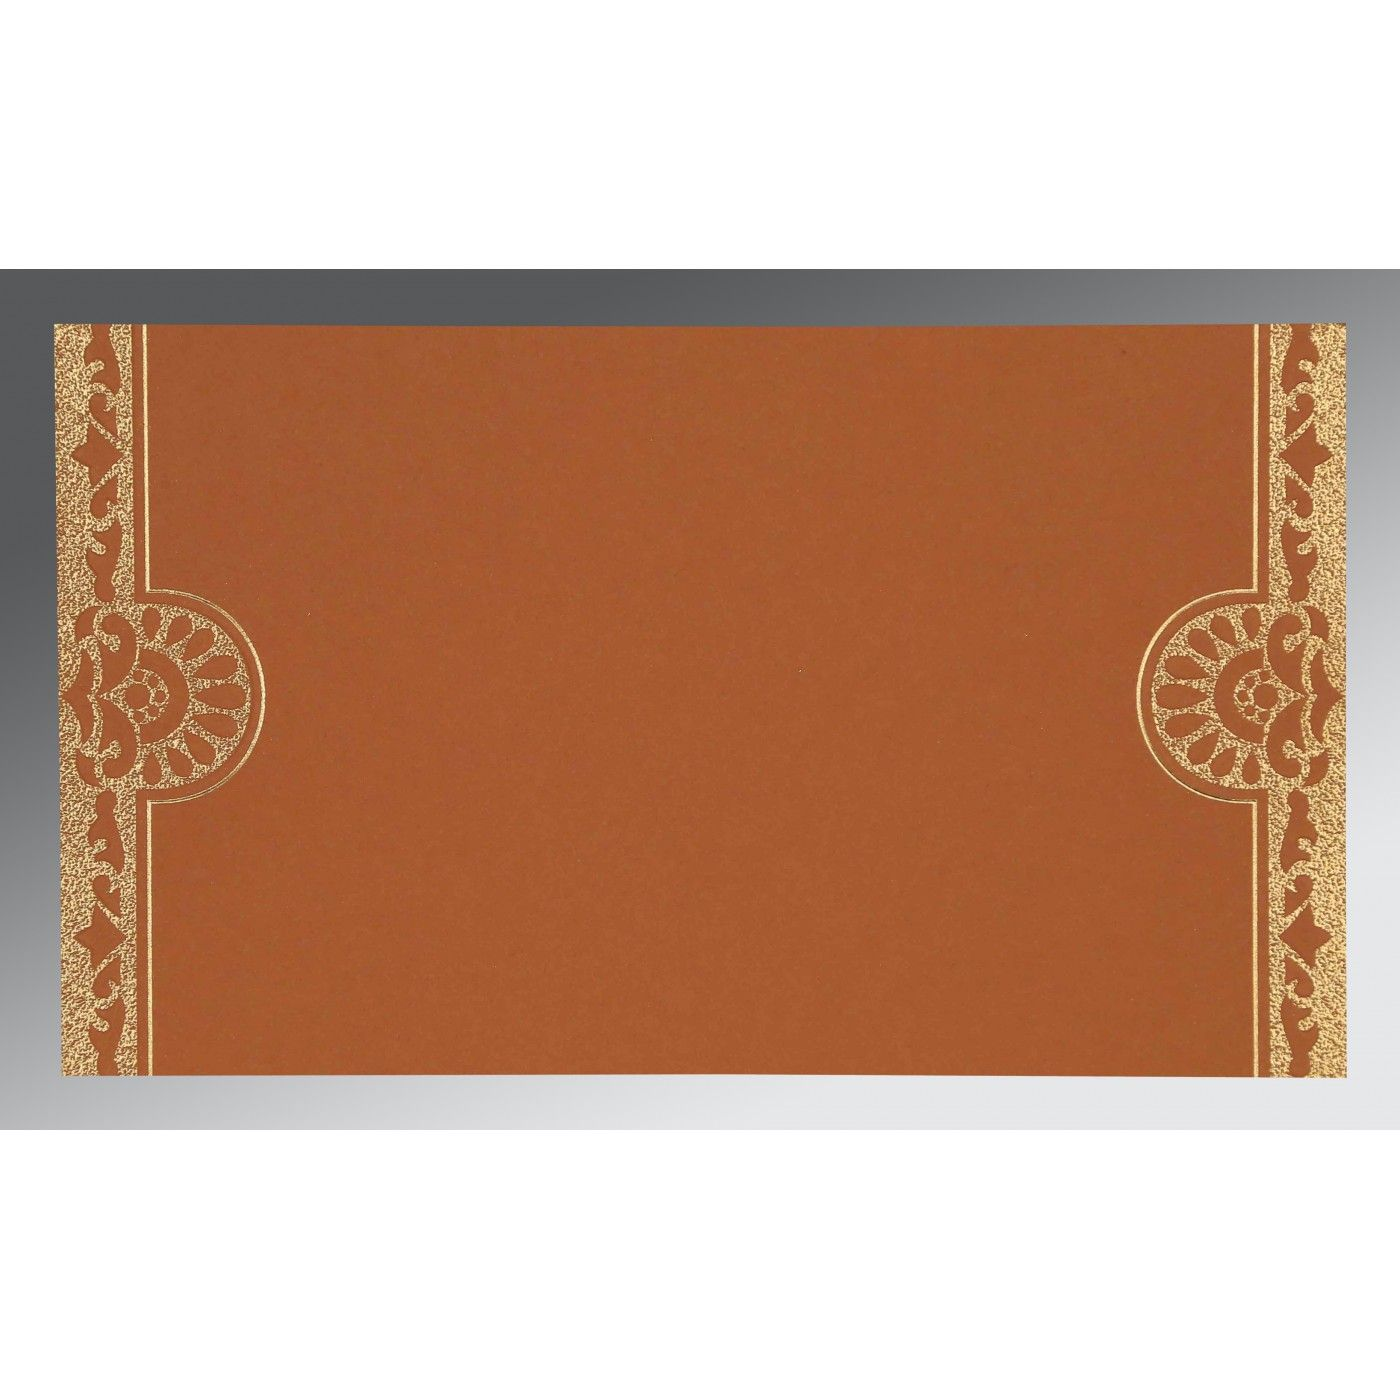 OFF-WHITE SHIMMERY FLORAL THEMED - SCREEN PRINTED WEDDING CARD : CD-8227L - IndianWeddingCards